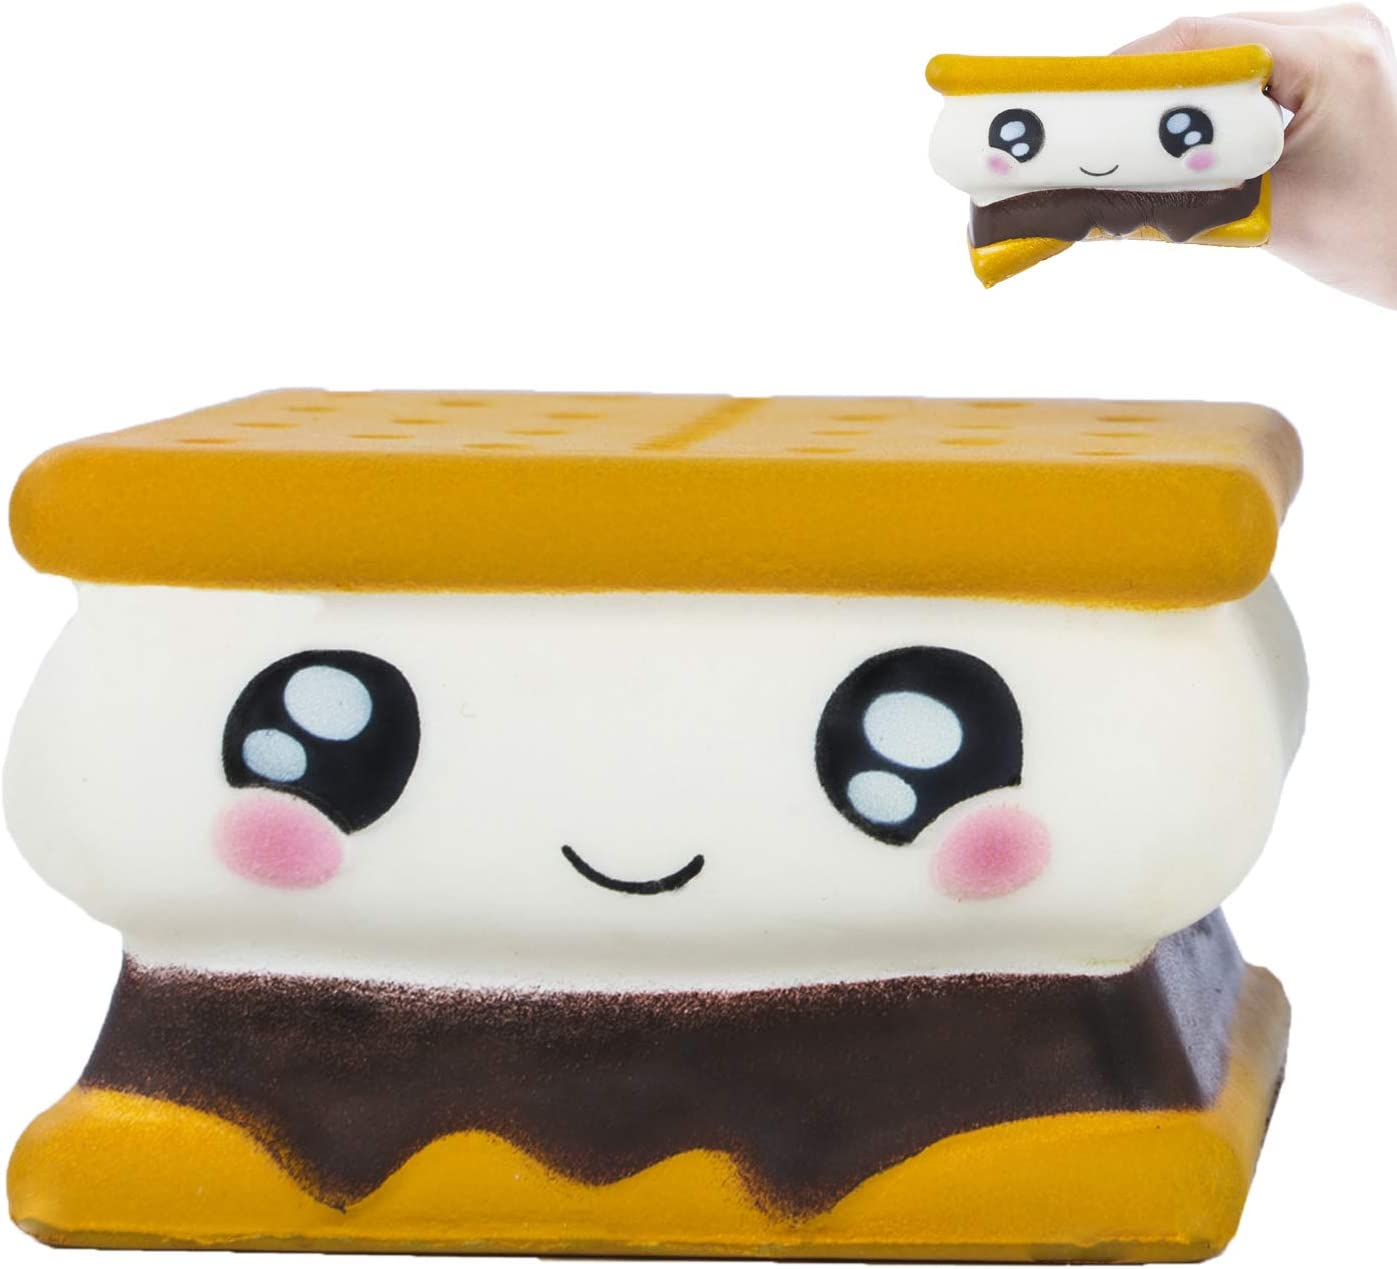 AILIMY Squishies Sandwich Biscuit Jumbo Slow Rising Cute Creamy Food Scent for Kids Party Toys